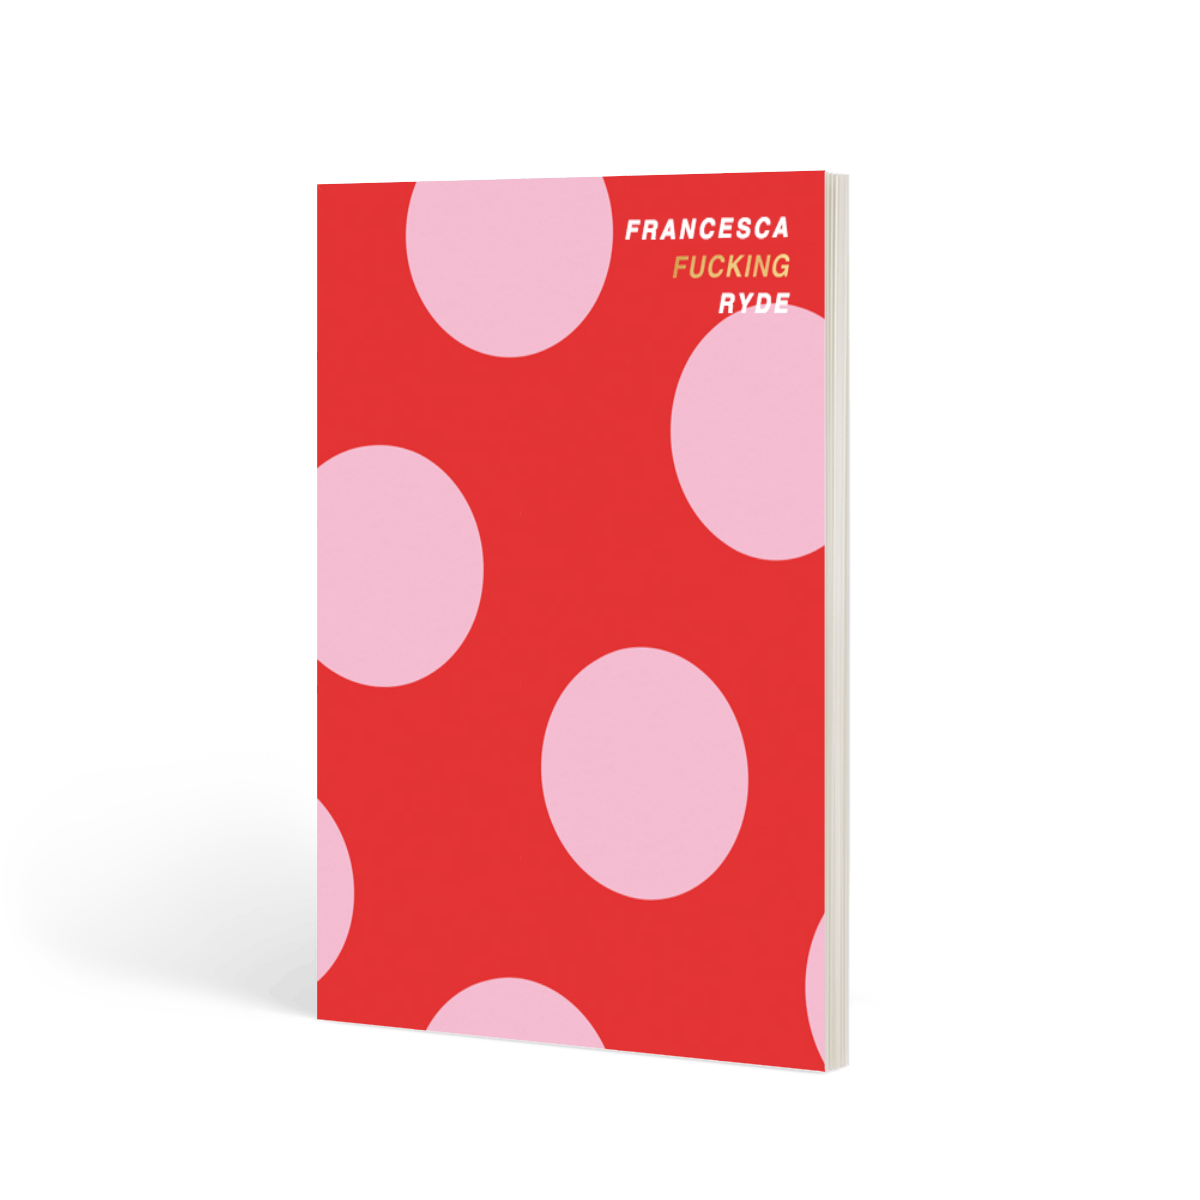 Https%3a%2f%2fwww.papier.com%2fproduct image%2f61760%2f6%2ff king pink polka dots 10528 front 1547744870.png?ixlib=rb 1.1